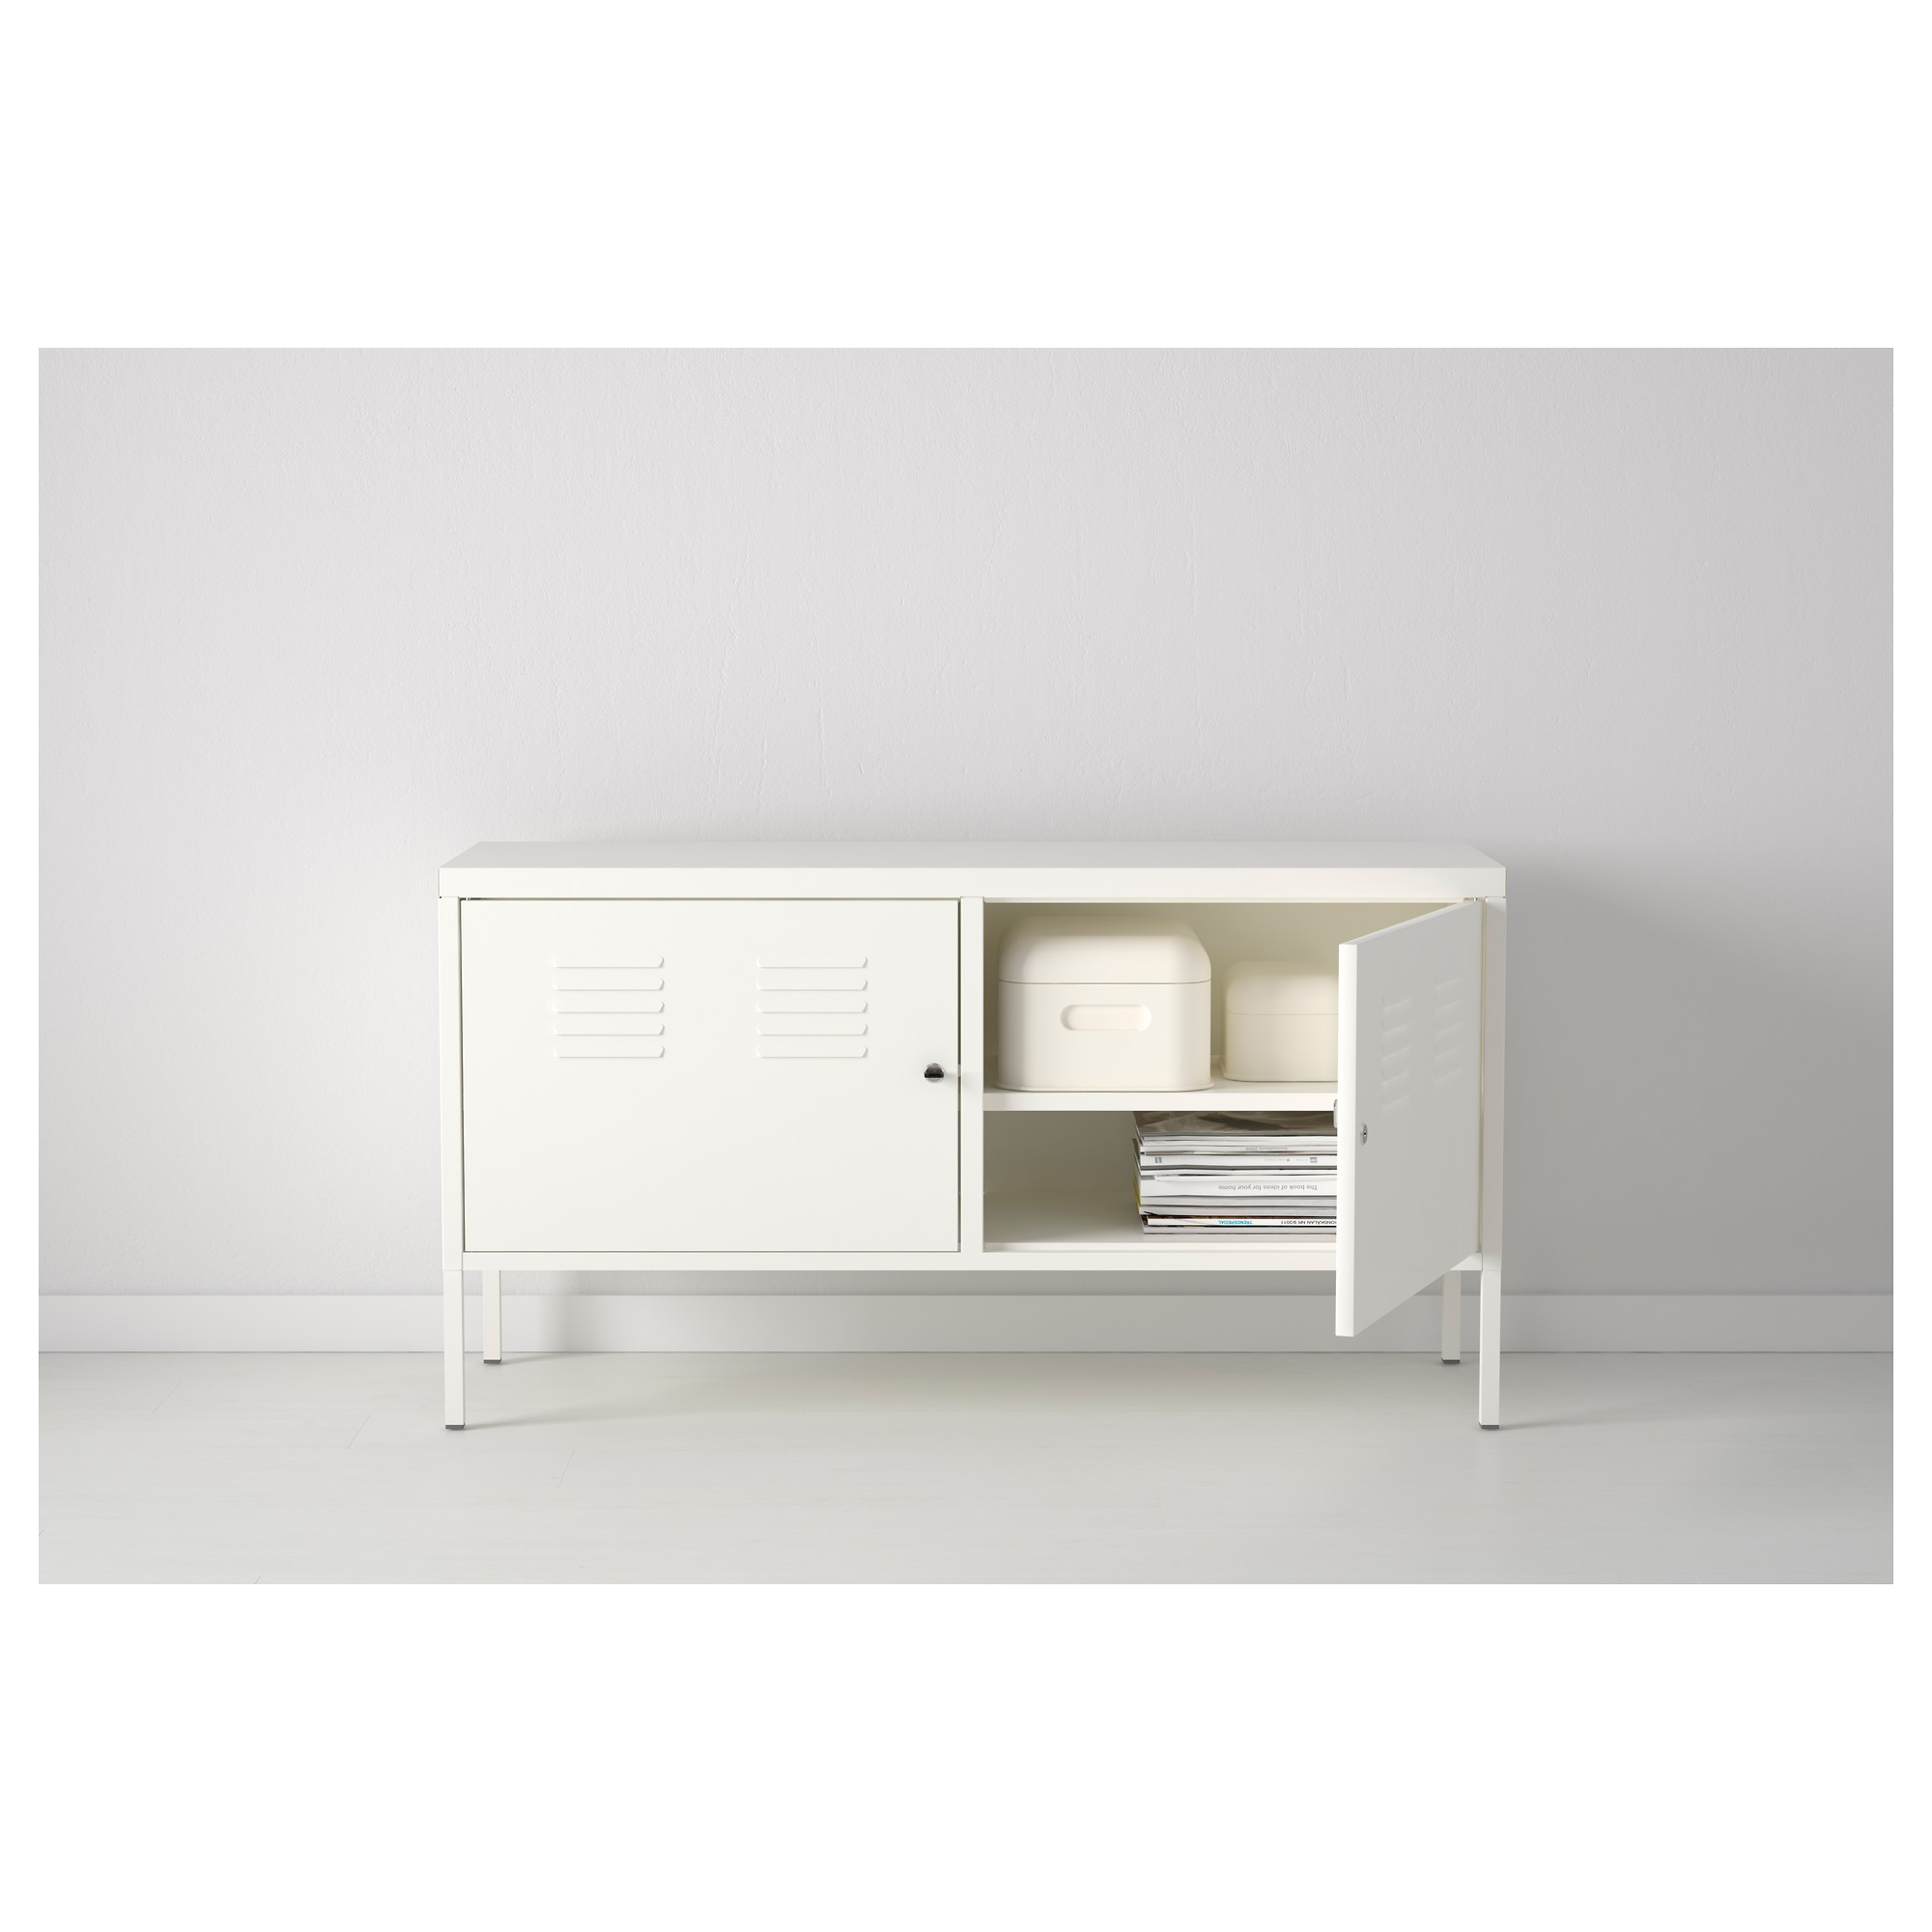 A White Small Storage System Produced By Ikea